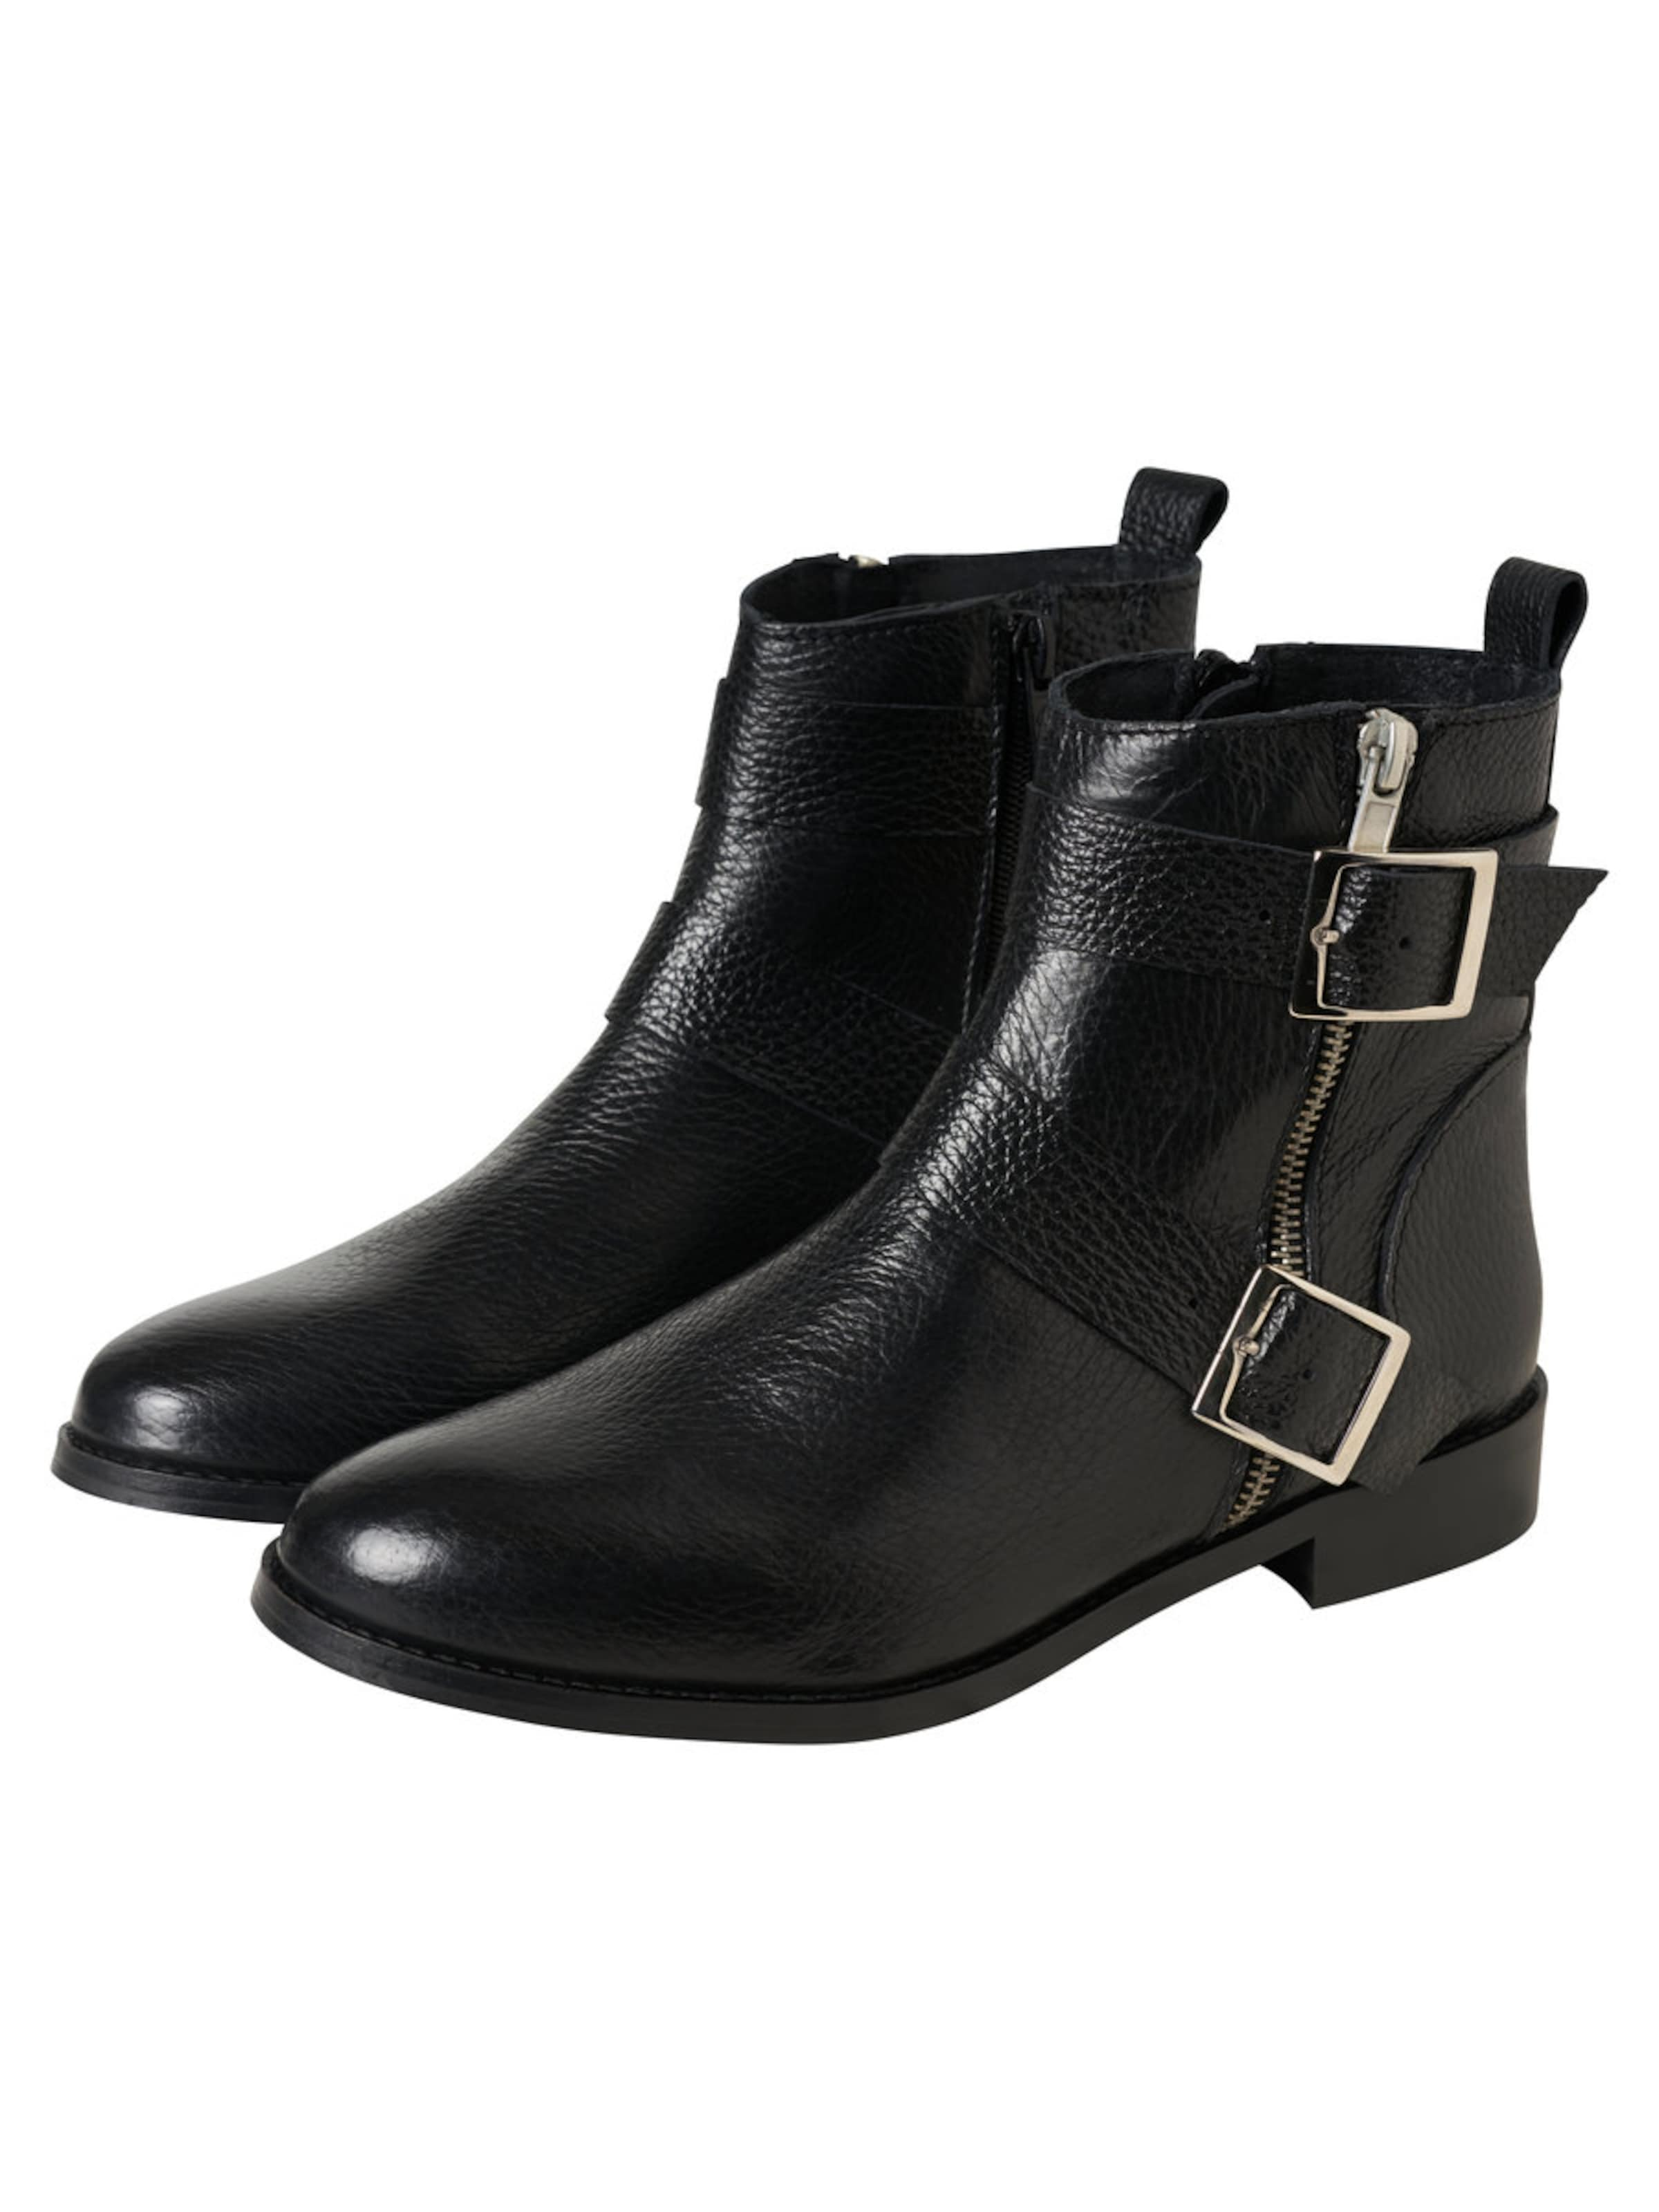 VERO MODA | Ankle Boots Boots Boots 881bf6